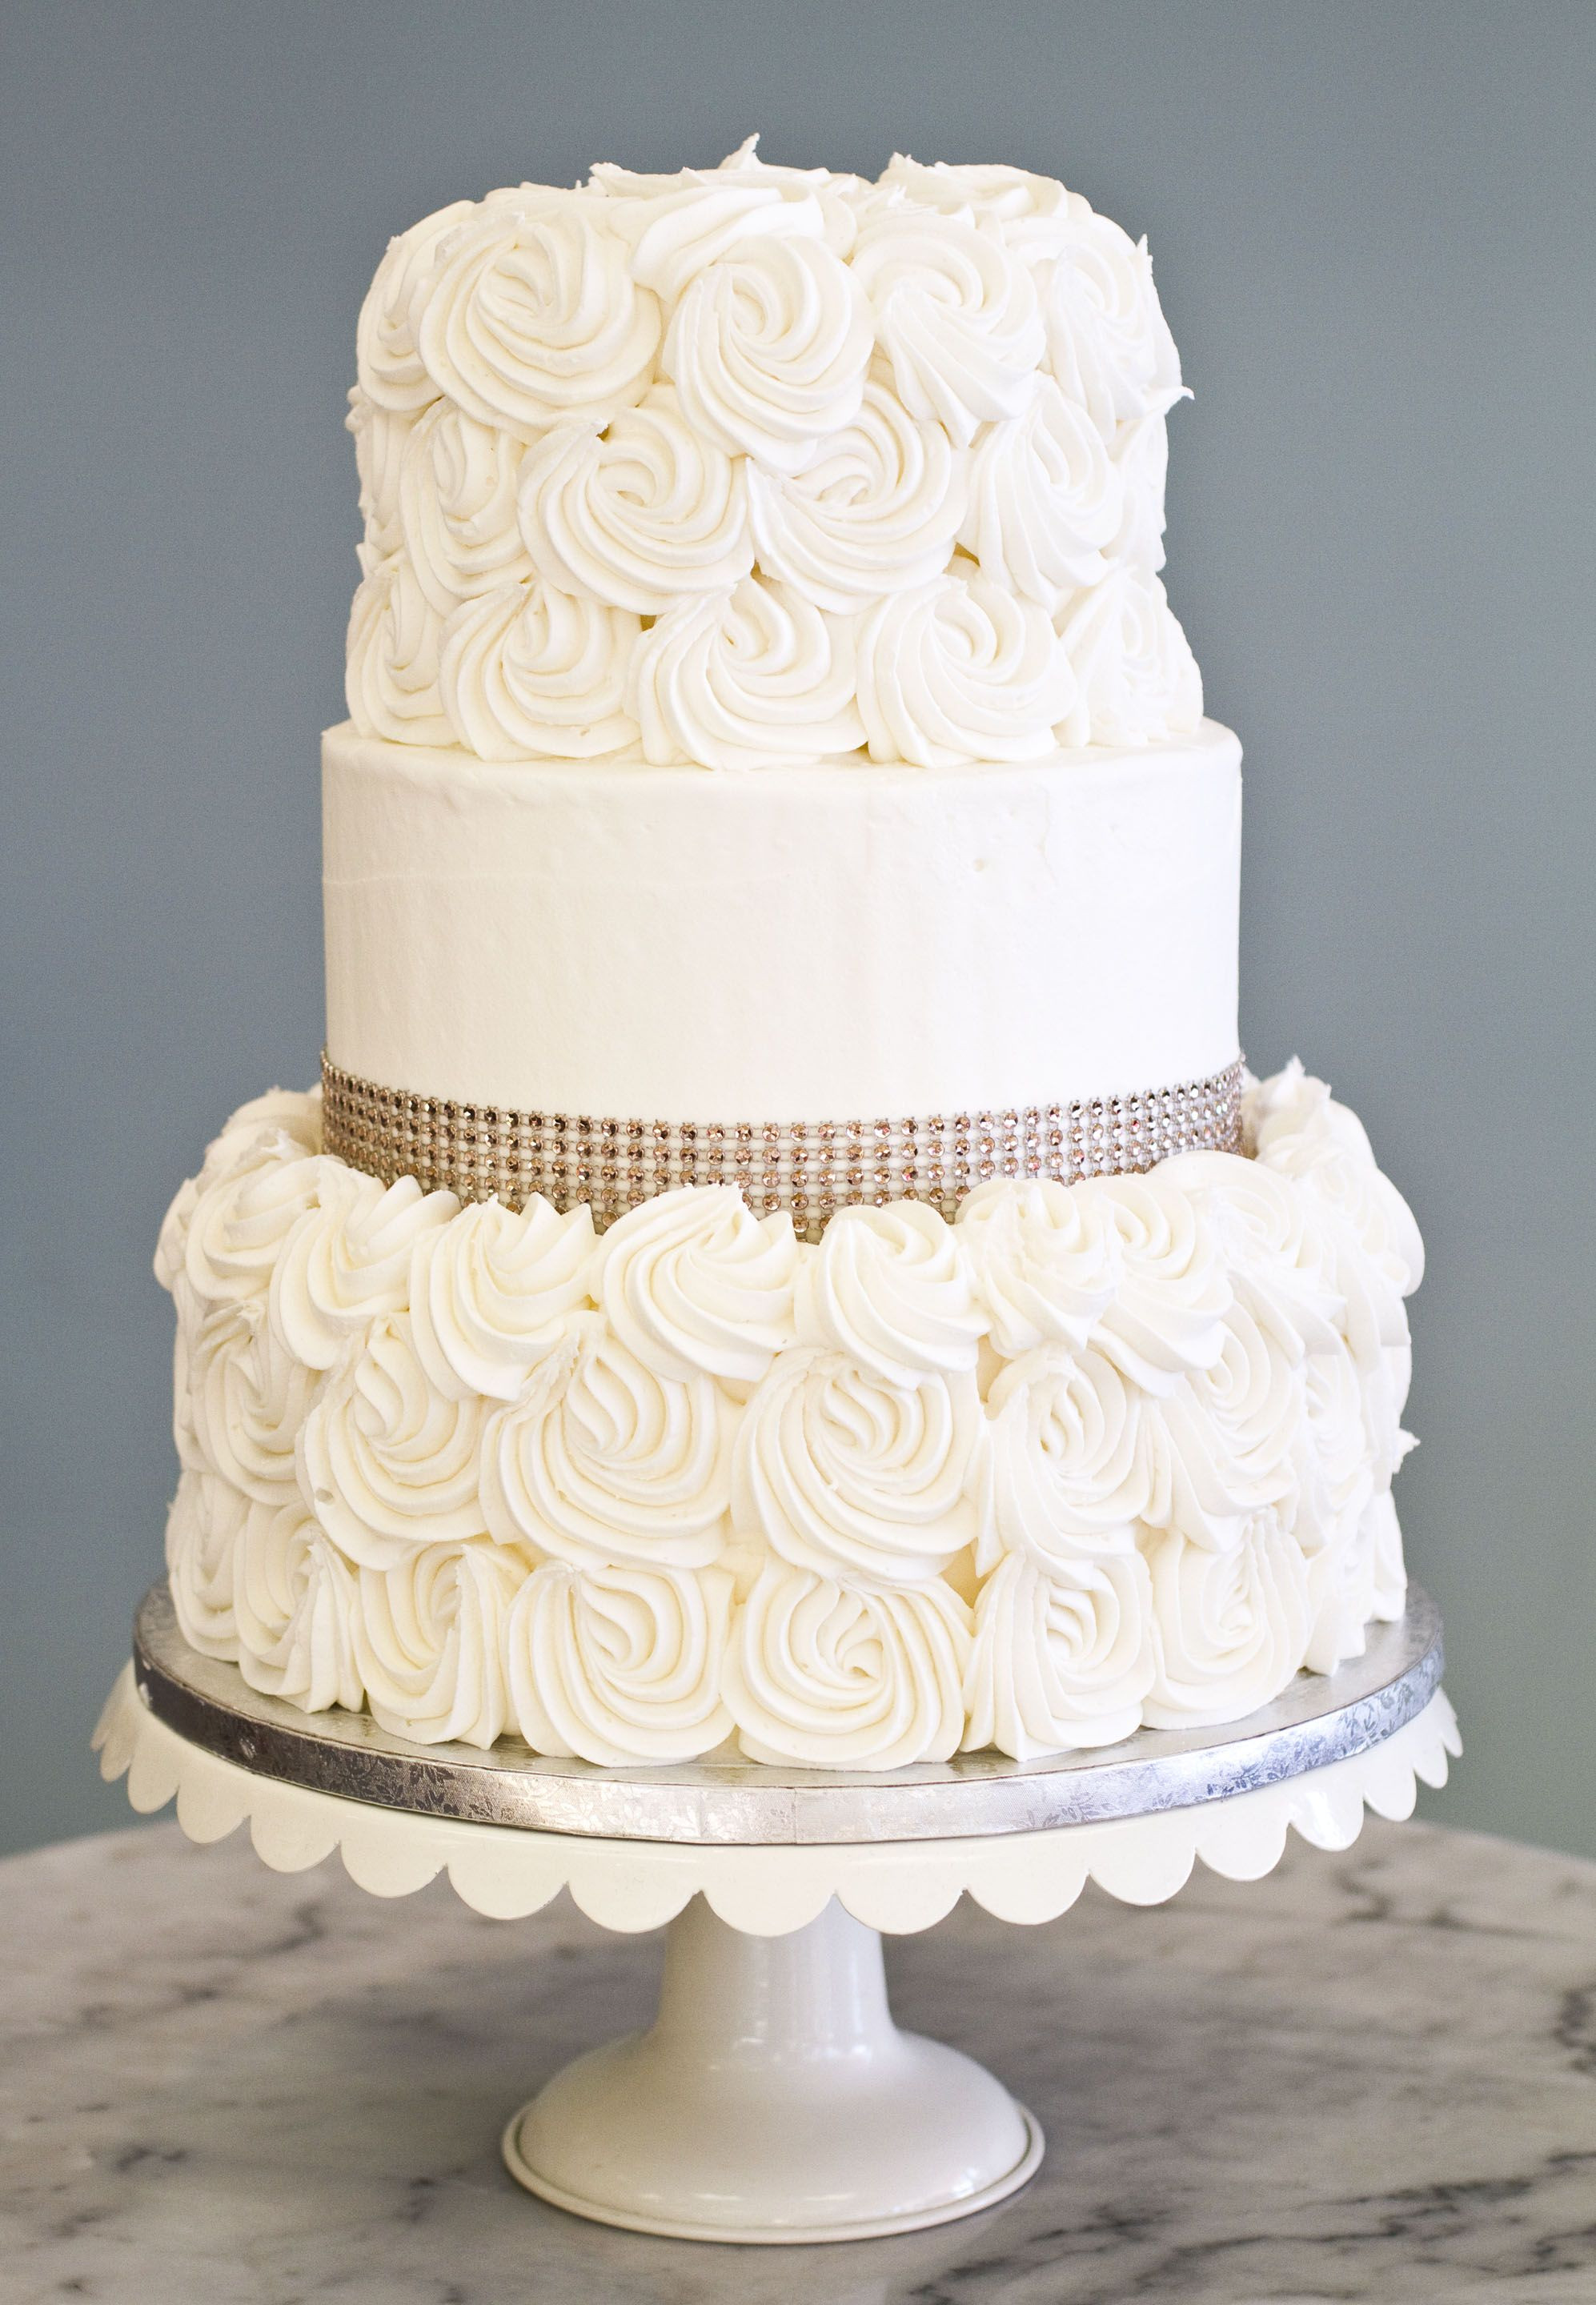 Easy Wedding Cakes  A simple elegant wedding cake with rosettes and